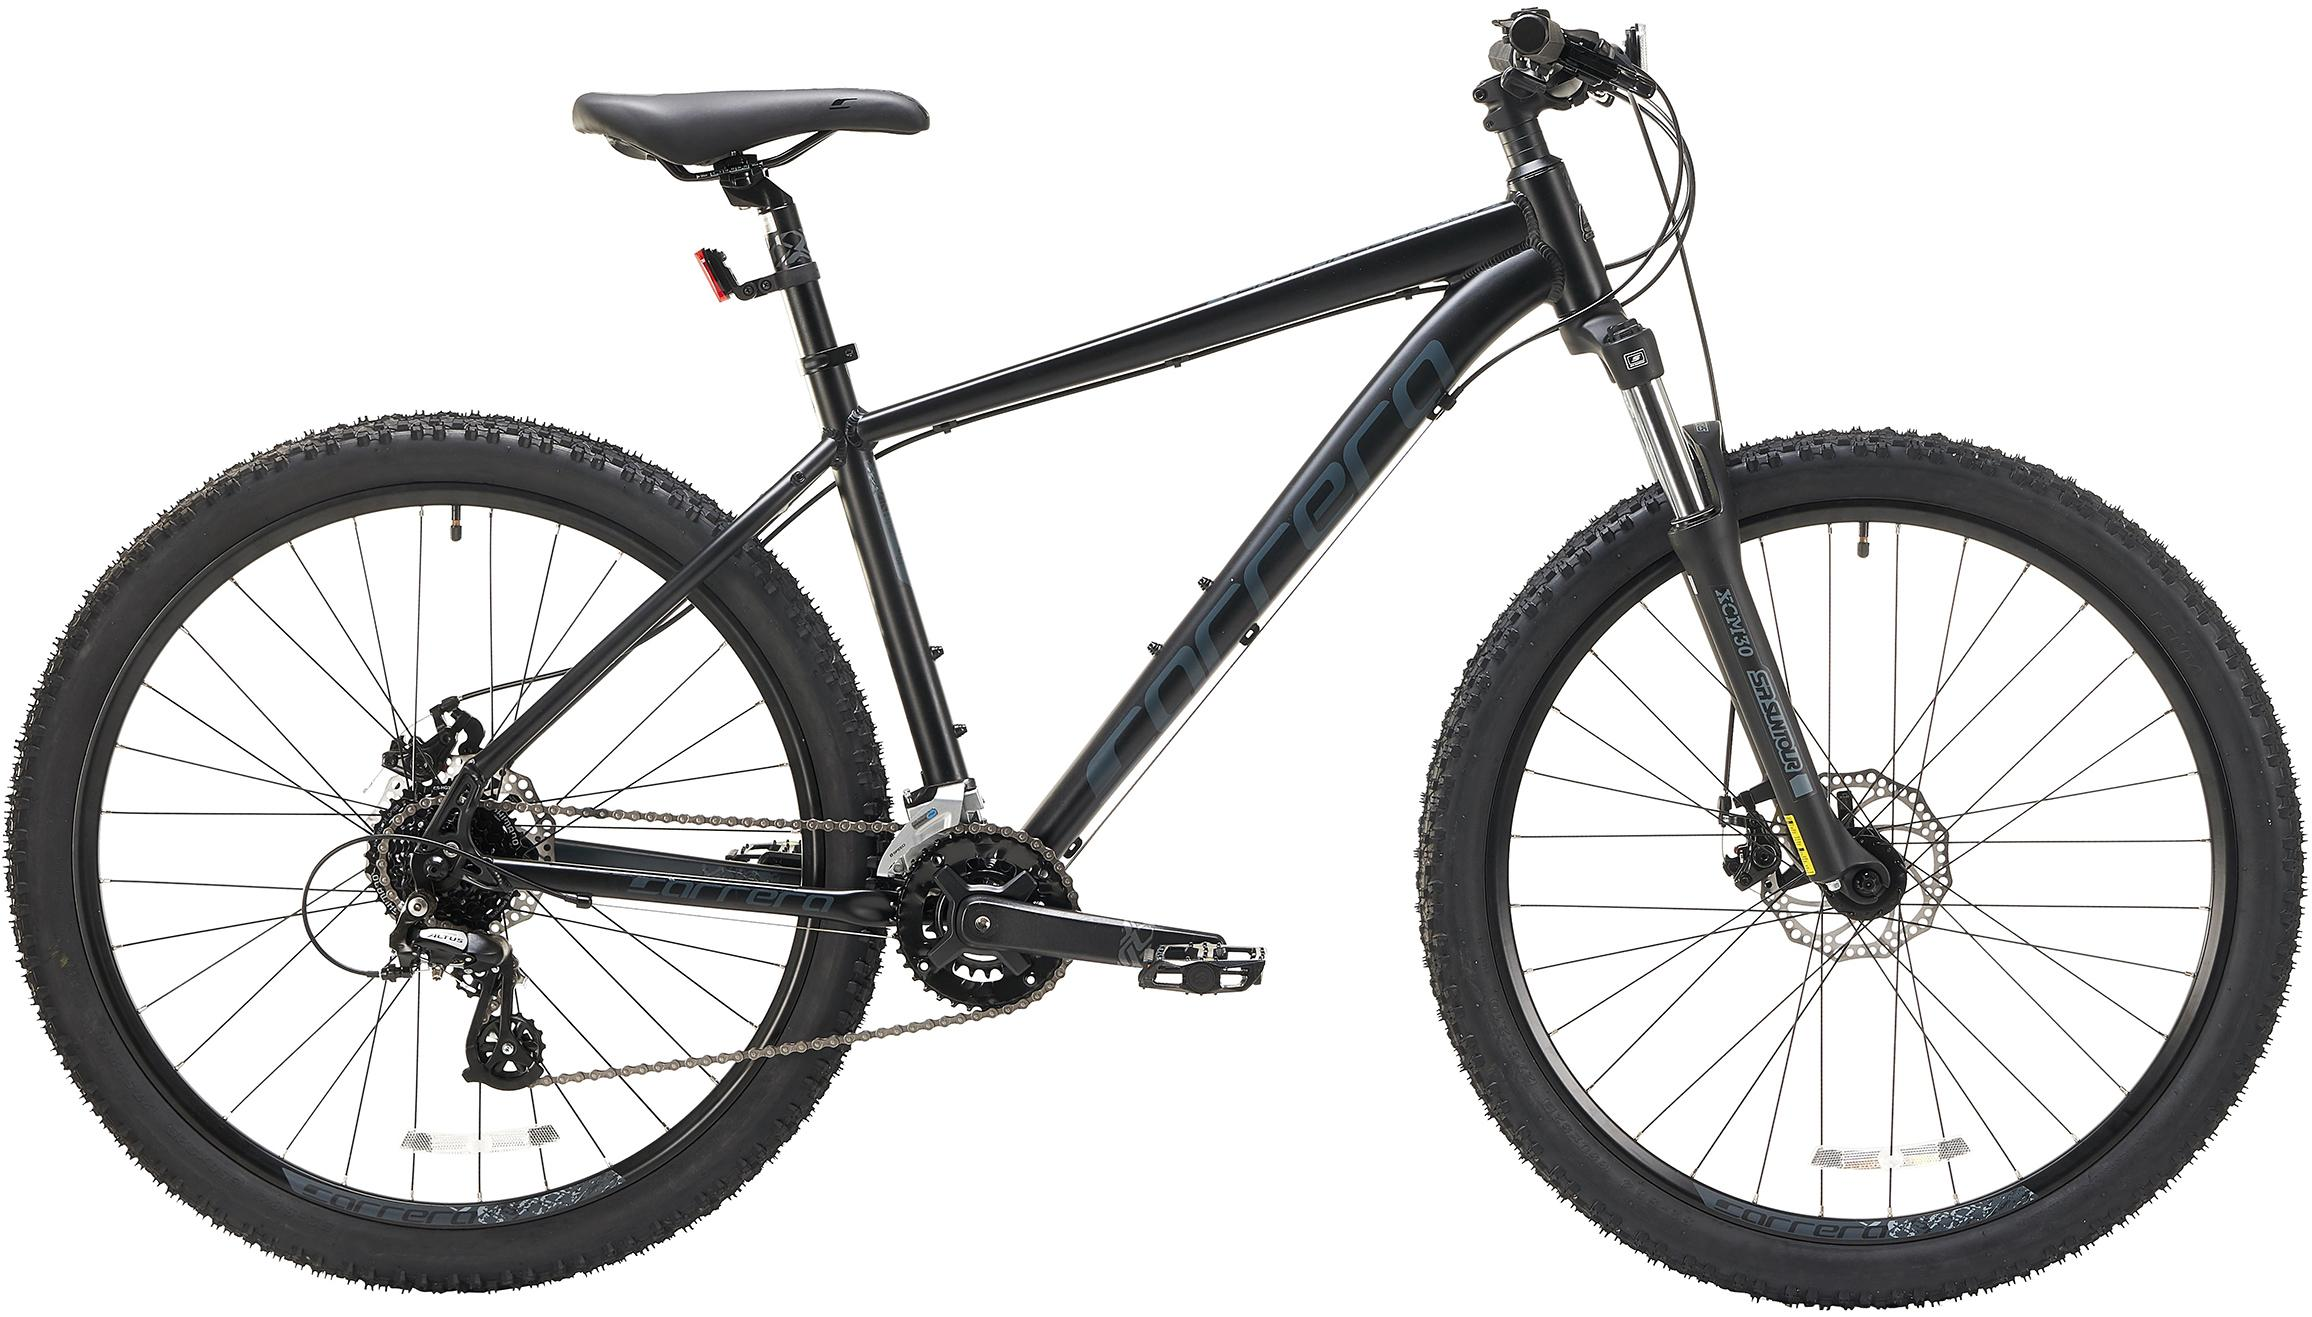 Carrera Vengeance Mens Mountain Bike (Without Puncture Protect) - Black